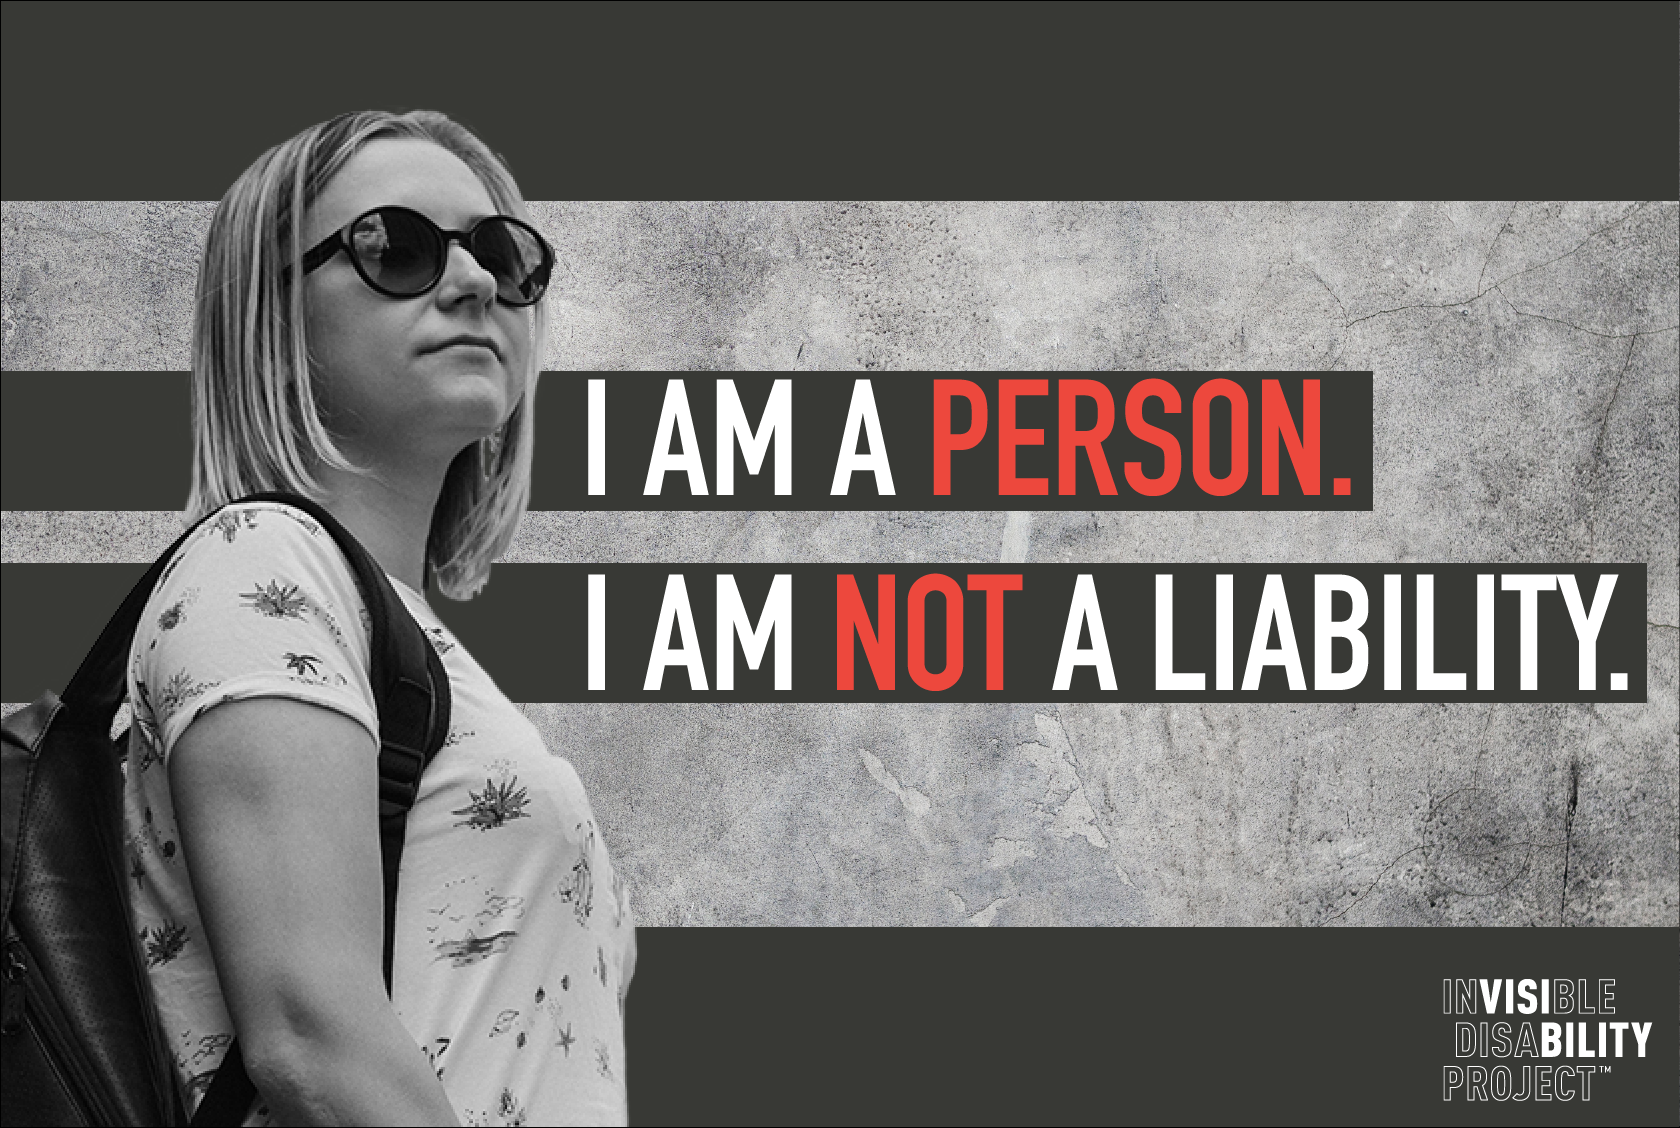 I am a person. I am not a liability.